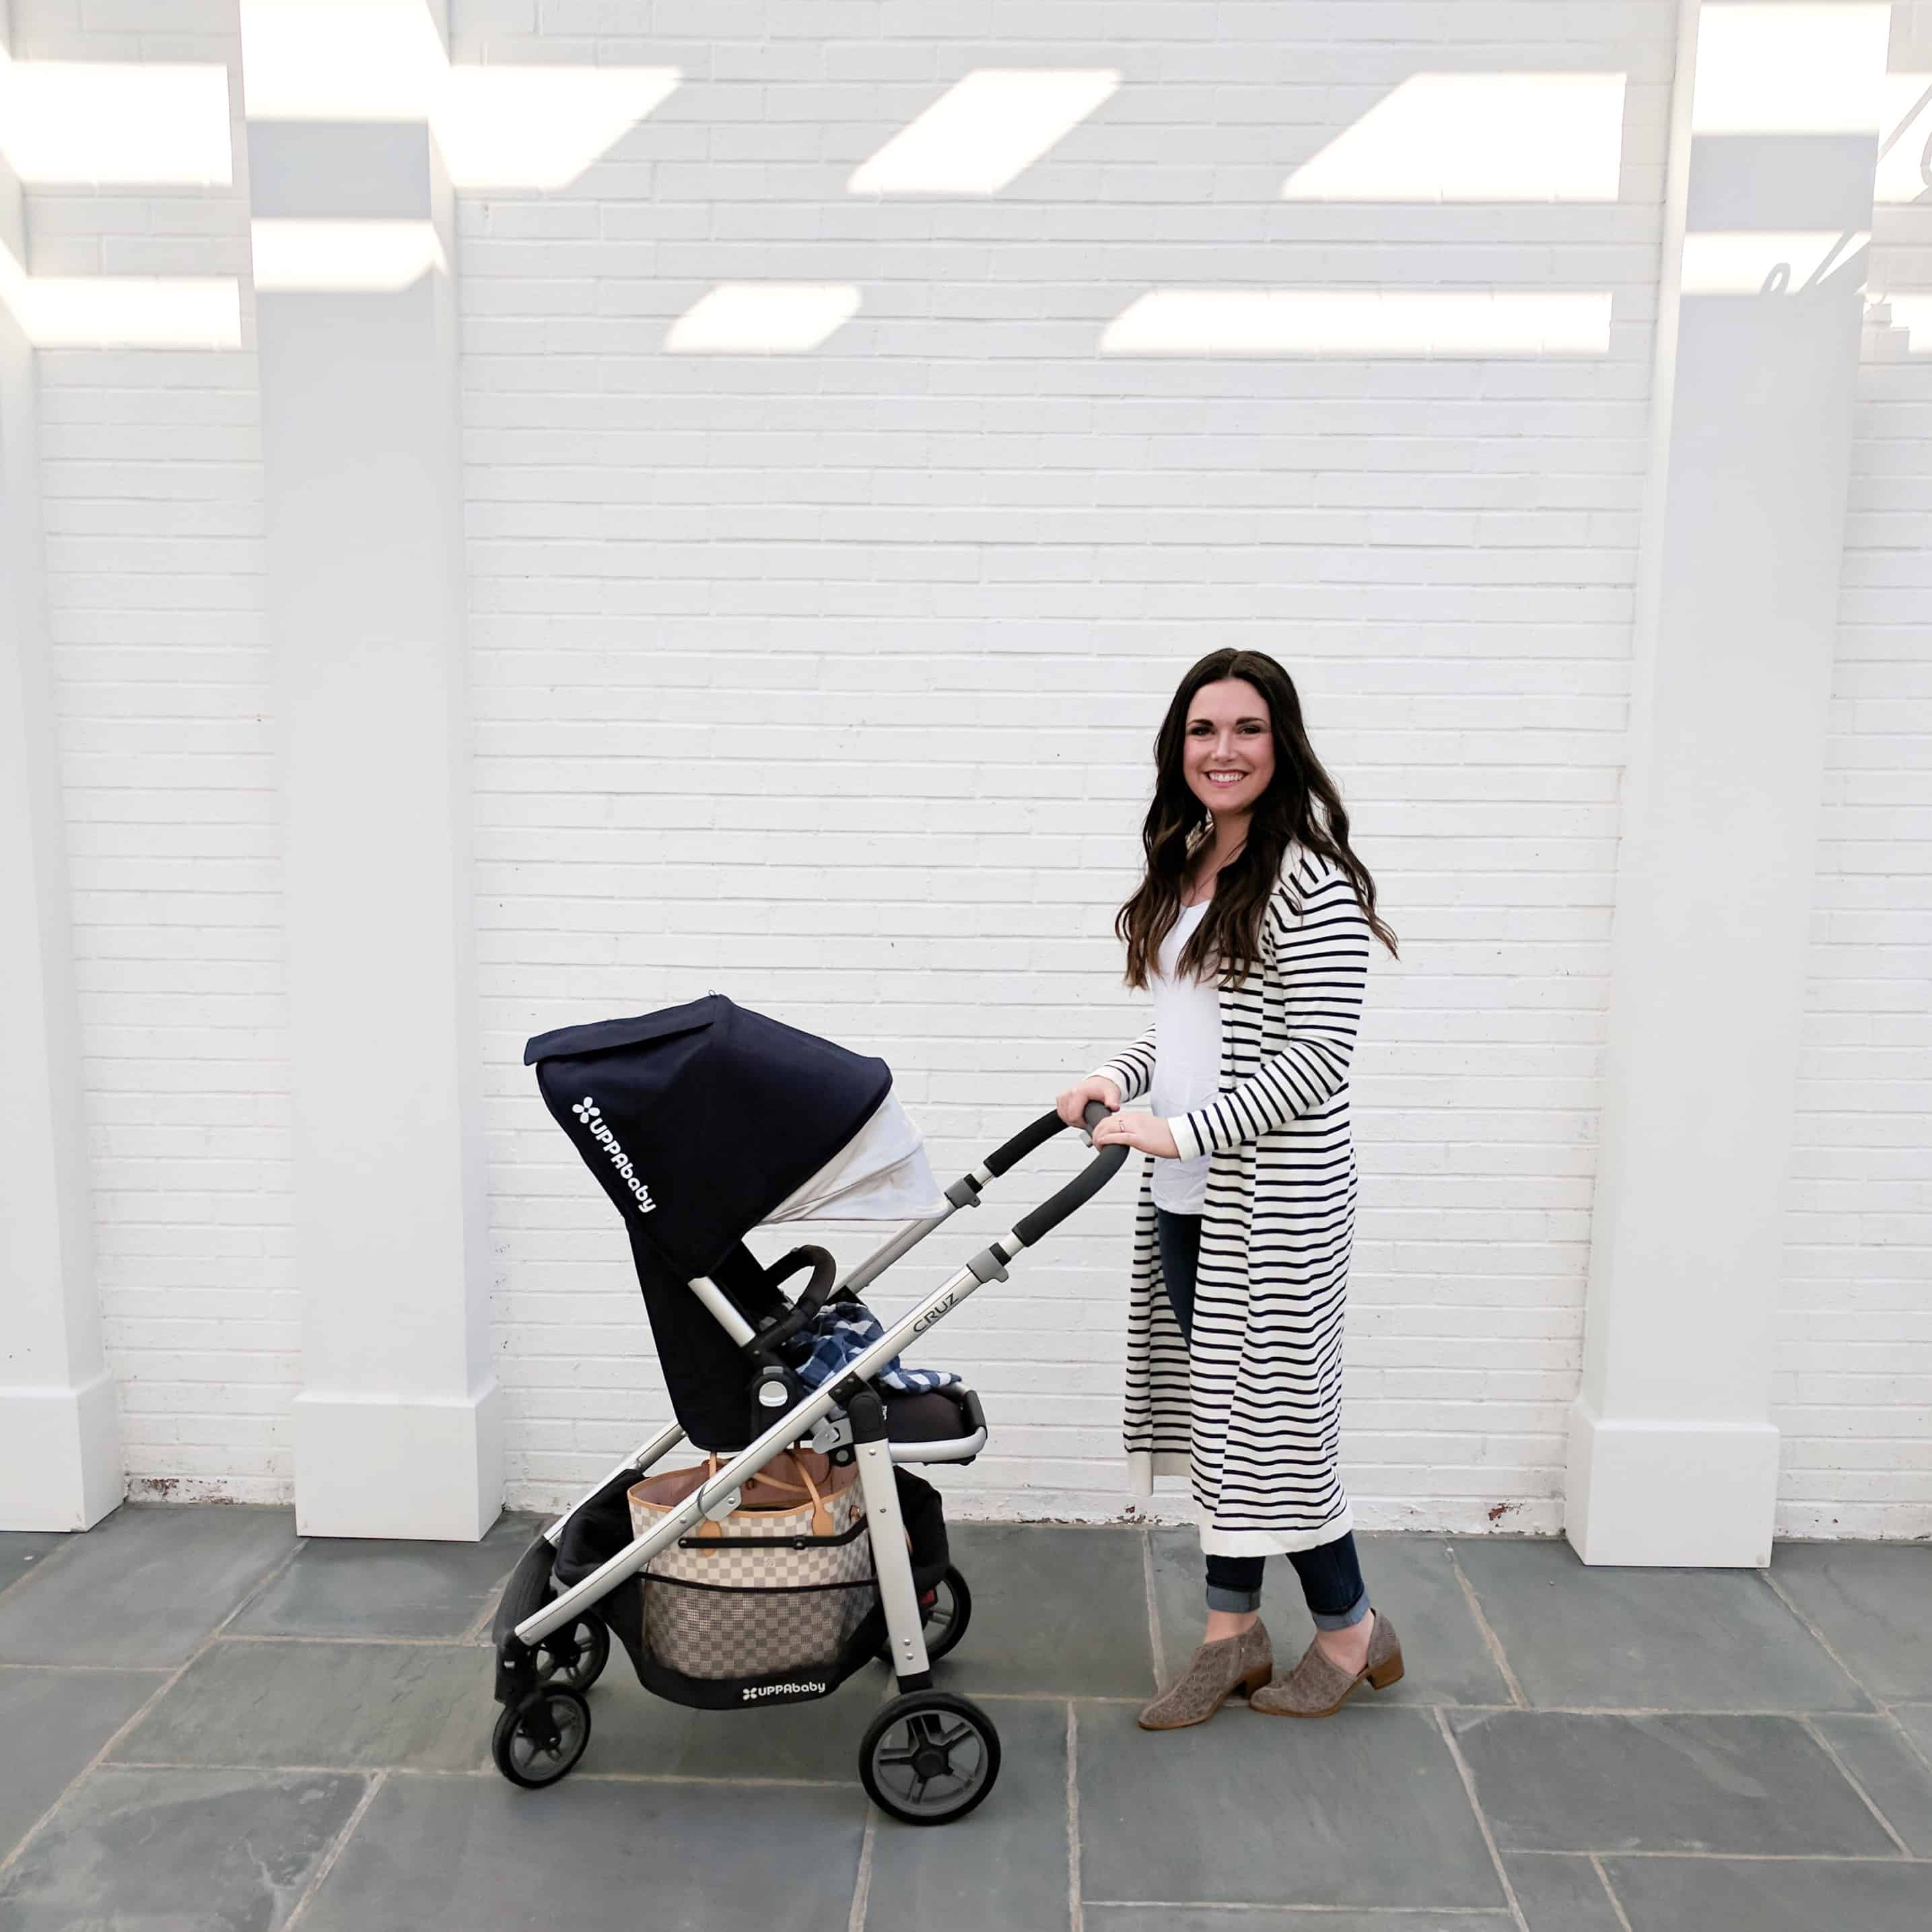 mom pushing stroller by white wall | Buying a Stroller